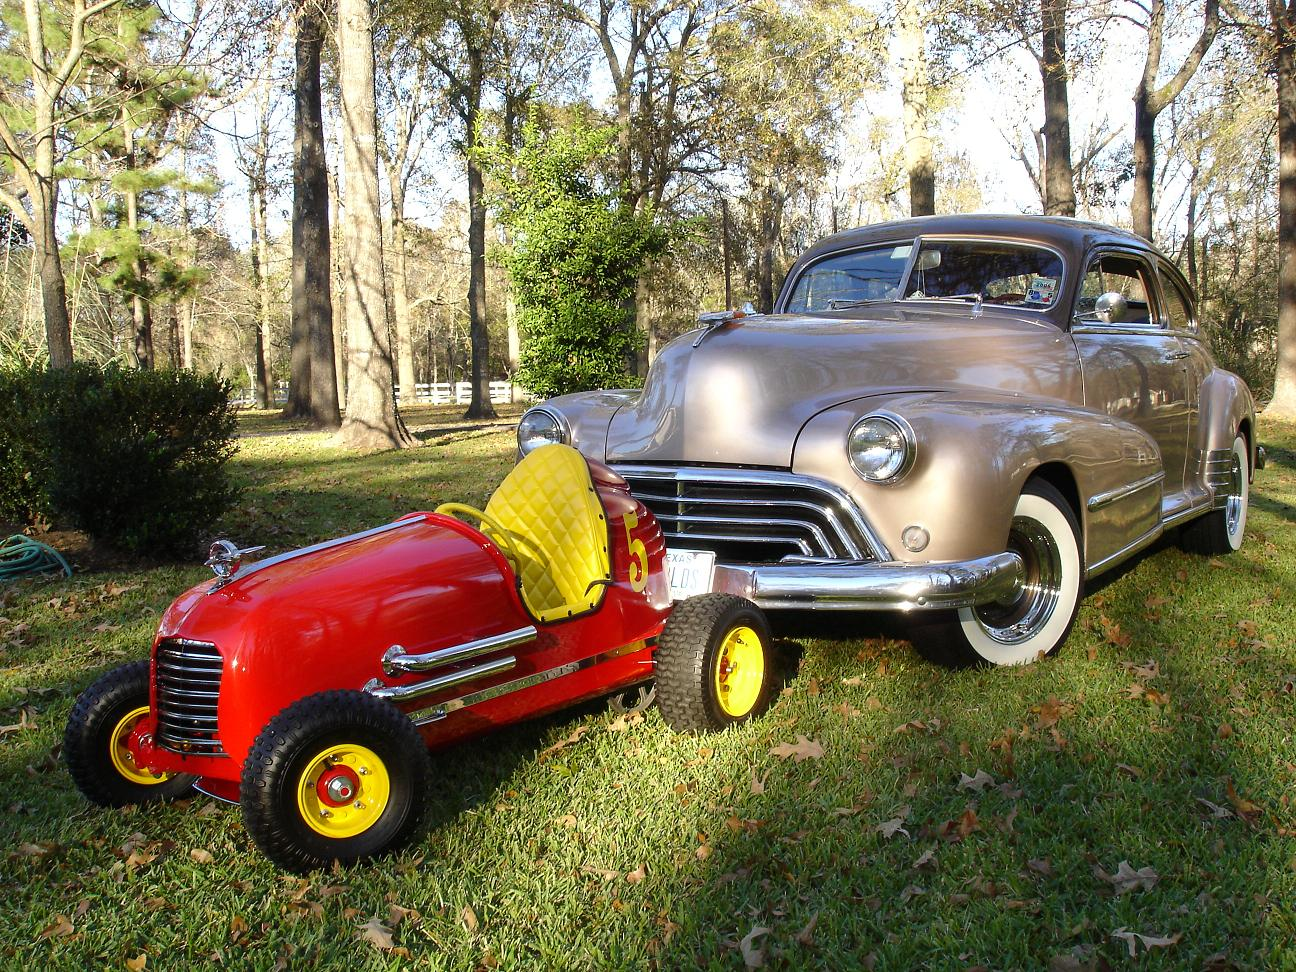 Click image for larger version  Name:After Restoration with my 48 Olds a.JPG Views:80 Size:420.5 KB ID:58852